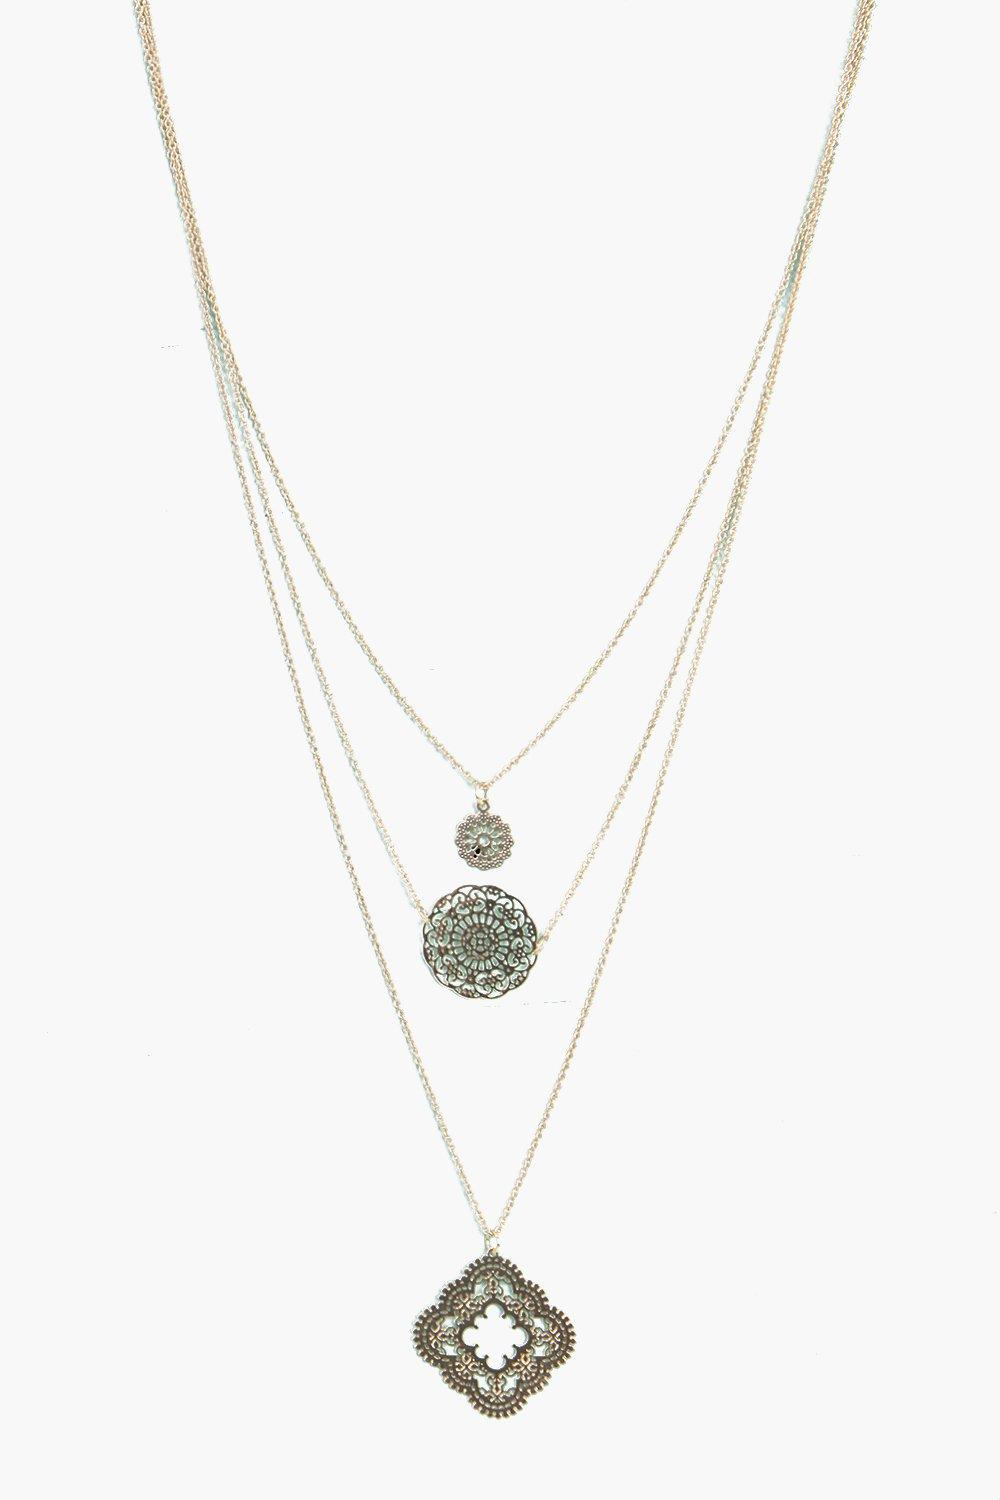 Kara Layered Filigree Pendant Necklace